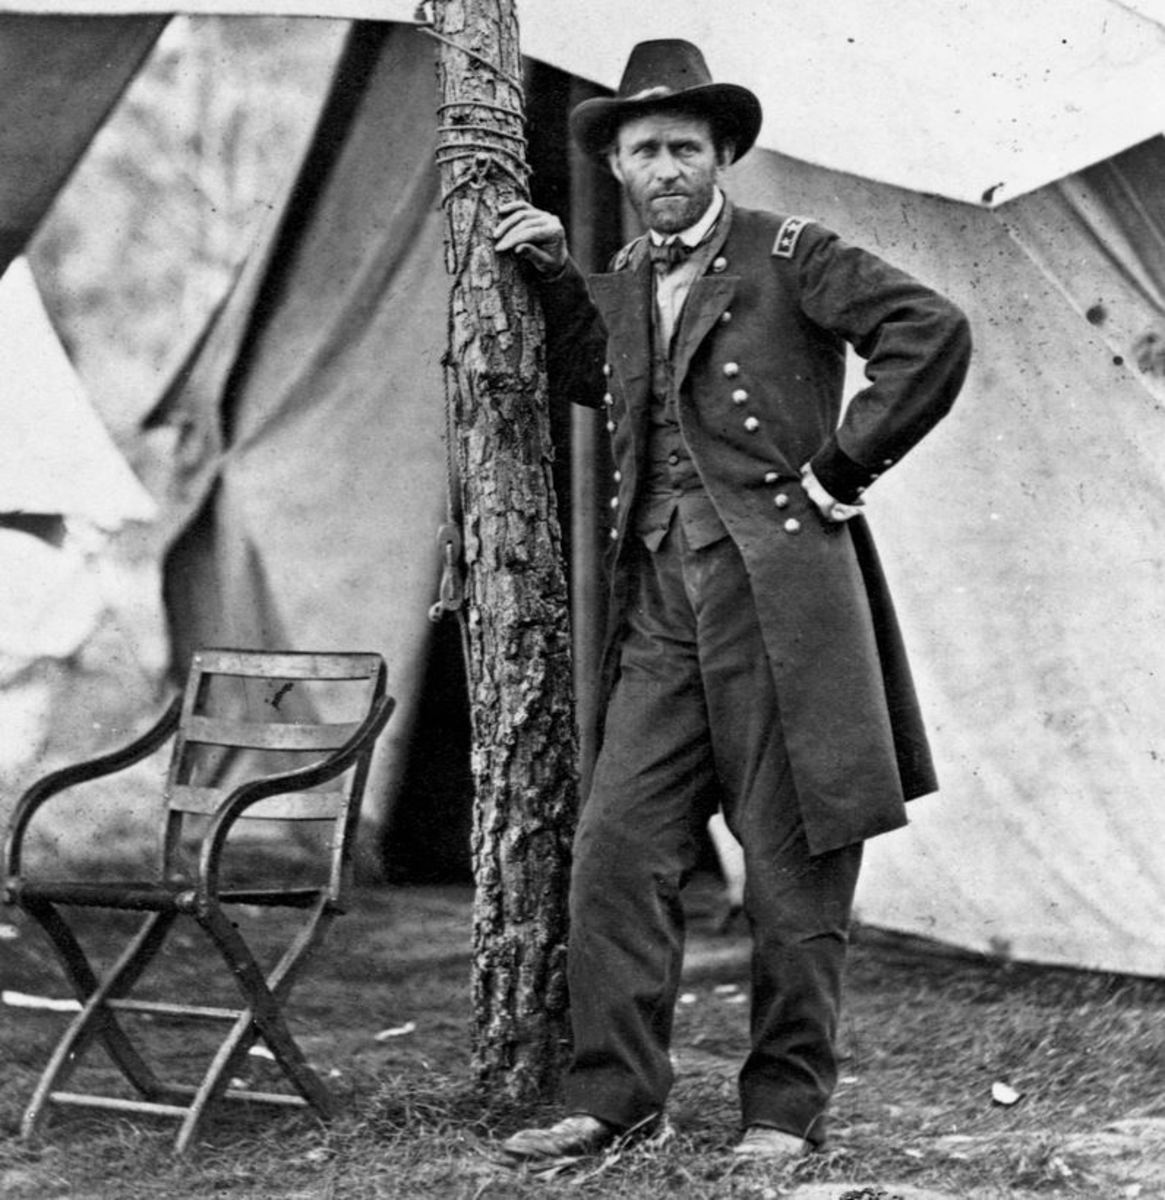 When Confederates Saluted Ulysses S. Grant Instead of Shooting Him in the Civil War